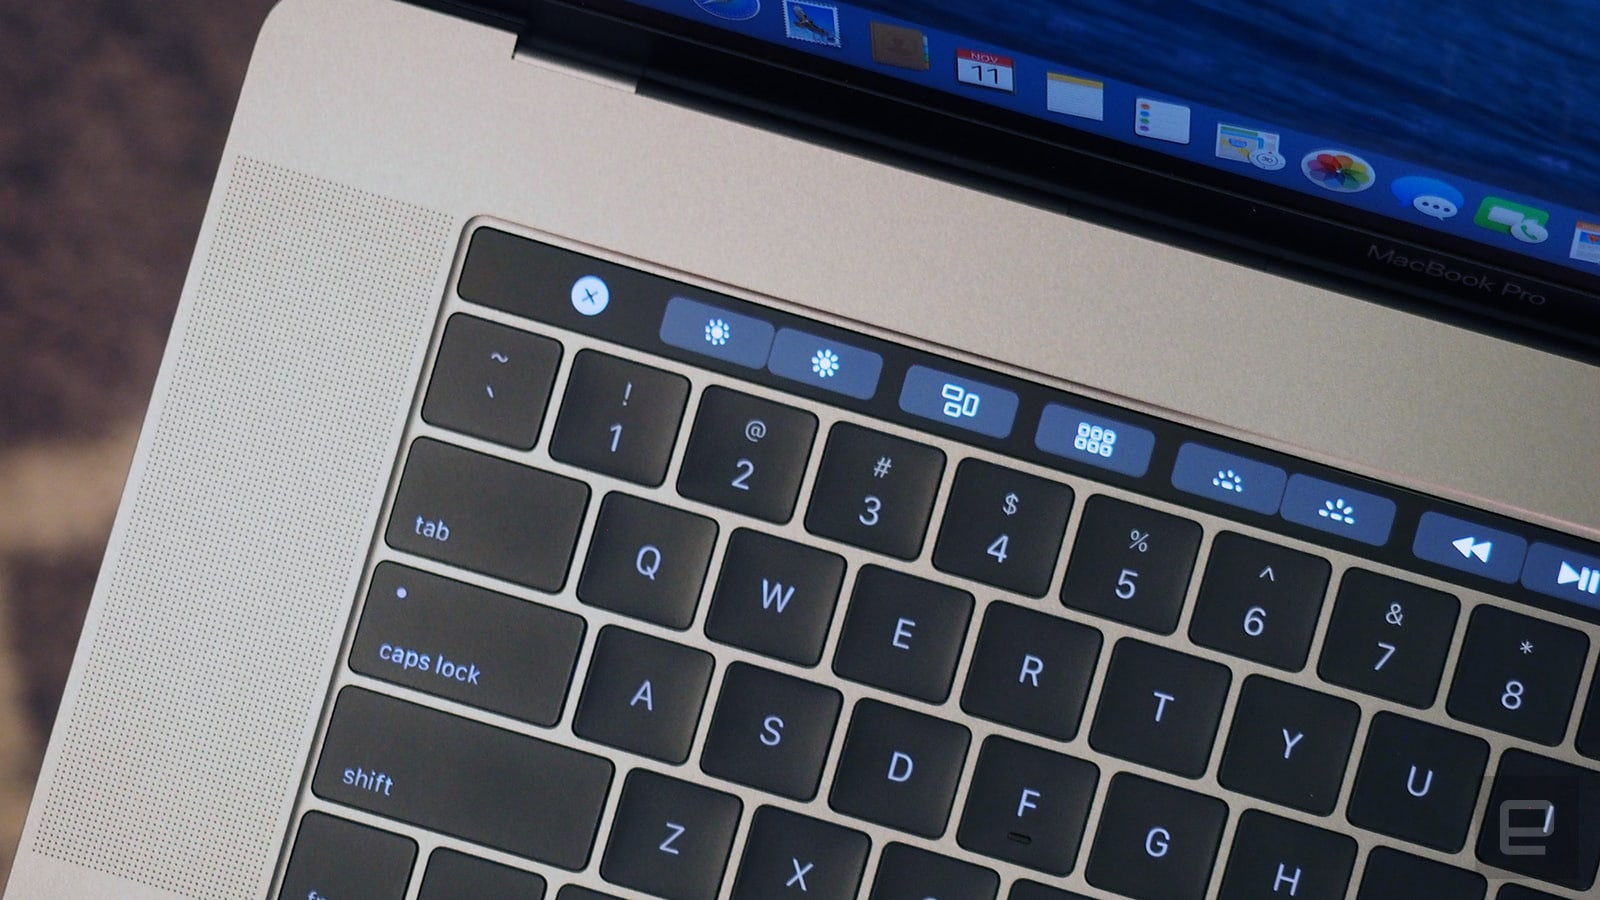 Apple may reveal its 16-inch MacBook Pro tomorrow